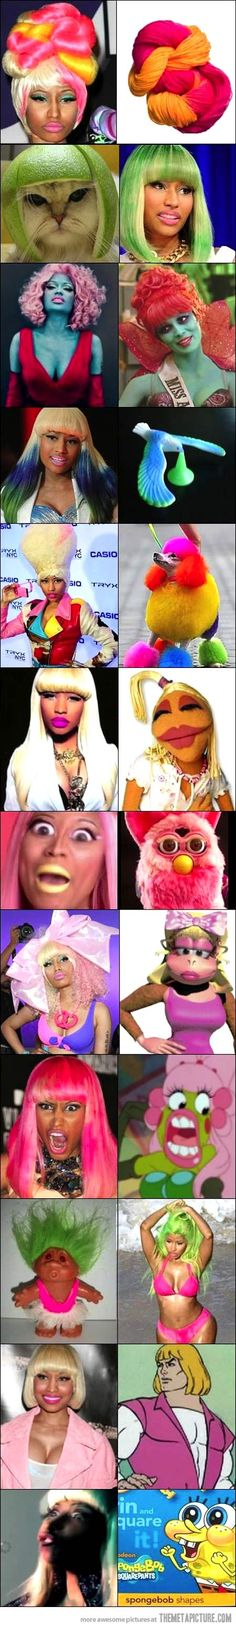 Things that look like Nicki Minaj